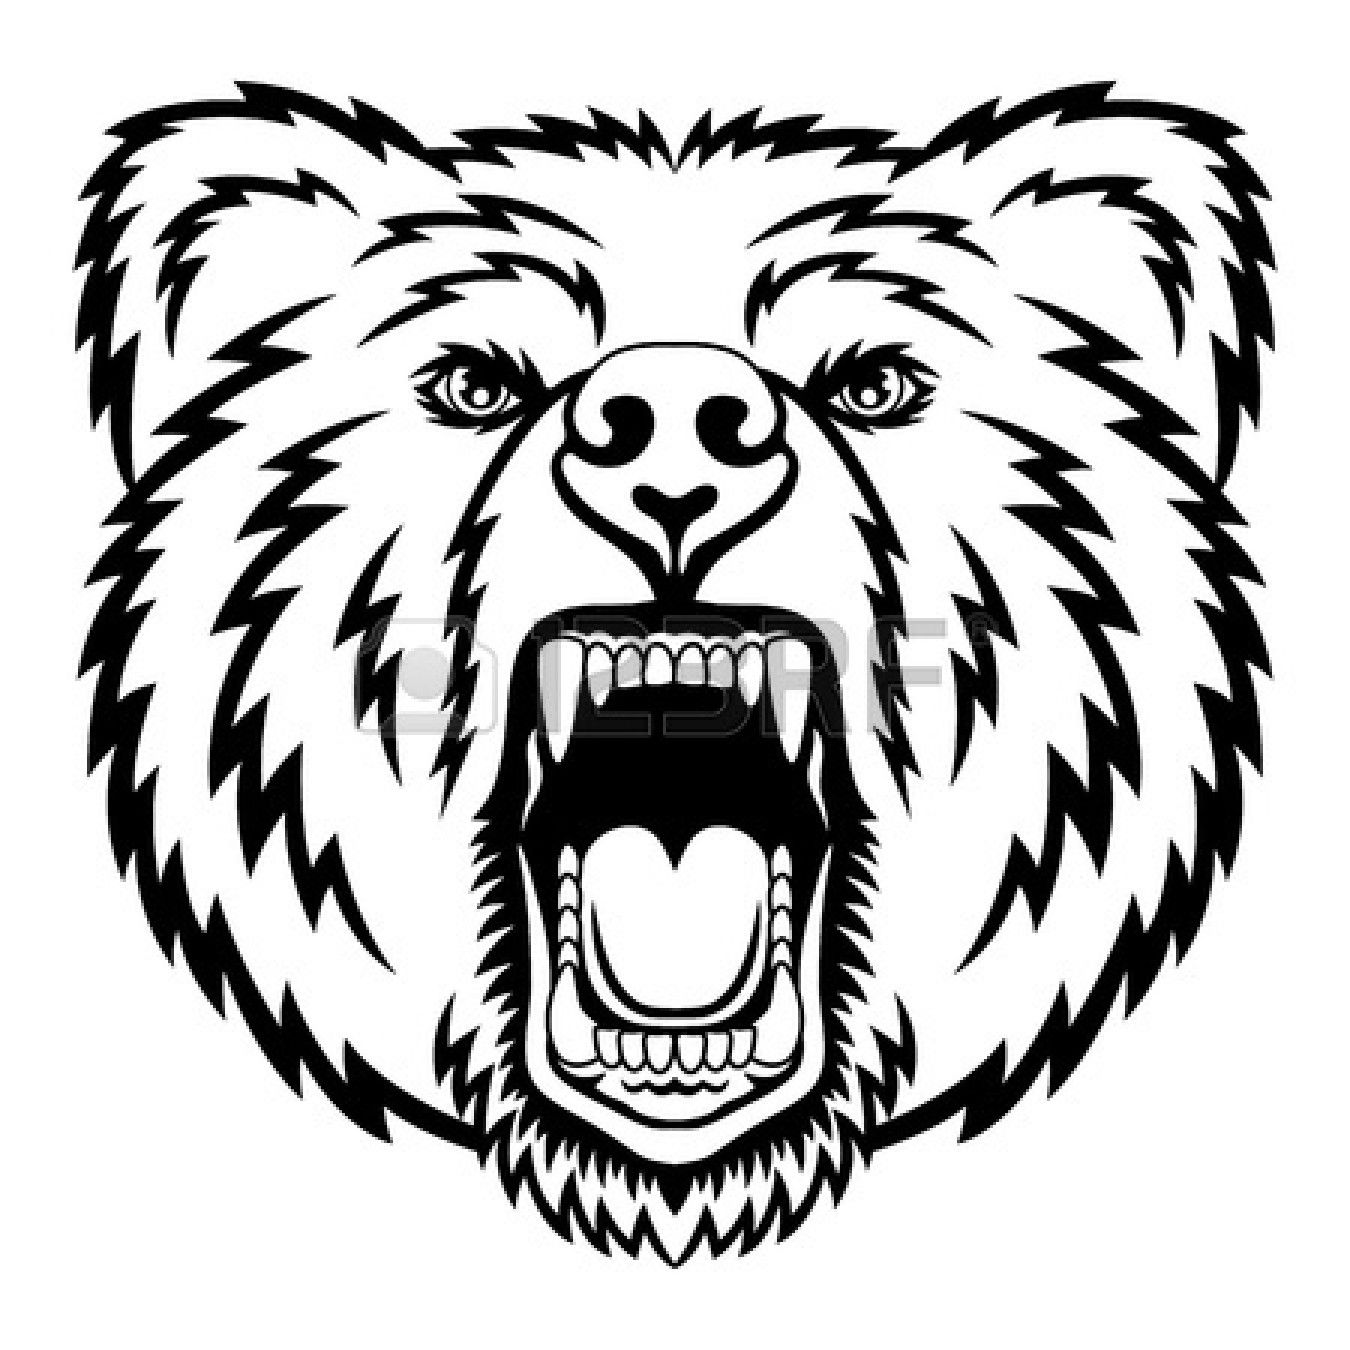 How To Draw Grizzly Bear Drawing Image Gallery  Lapse Shot